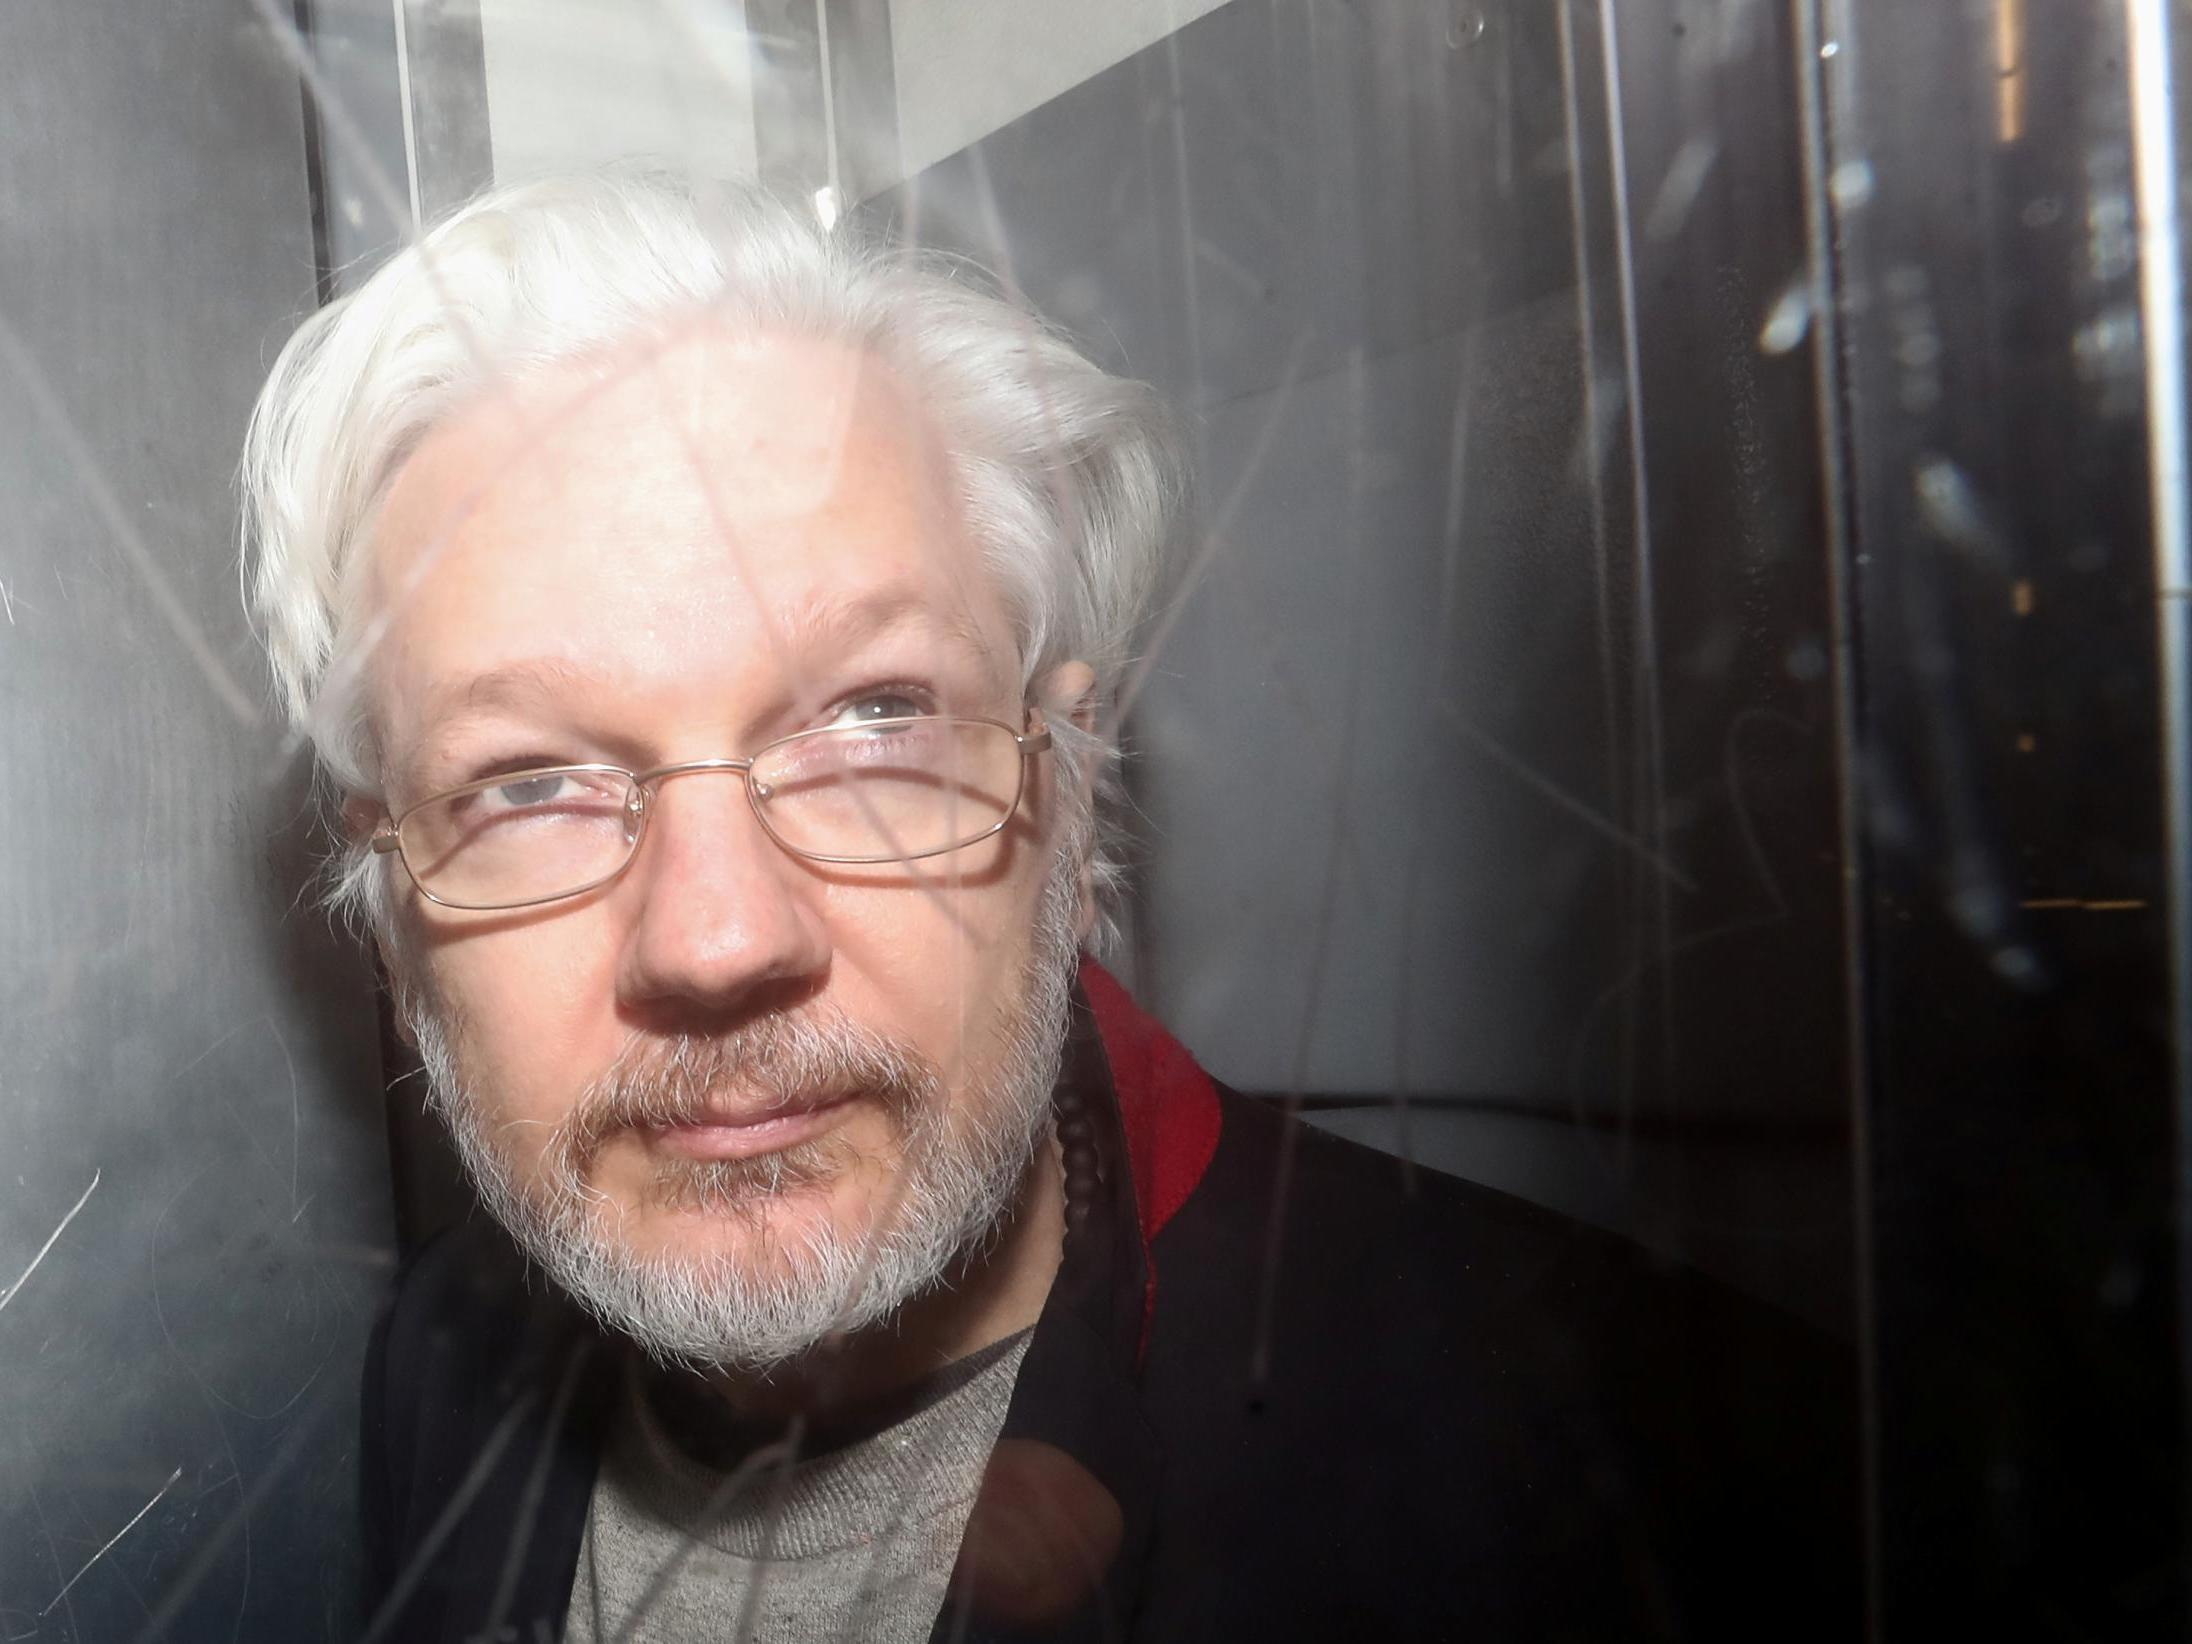 Julian Assange blocked from seeing key evidence ahead of extradition hearing, court hears